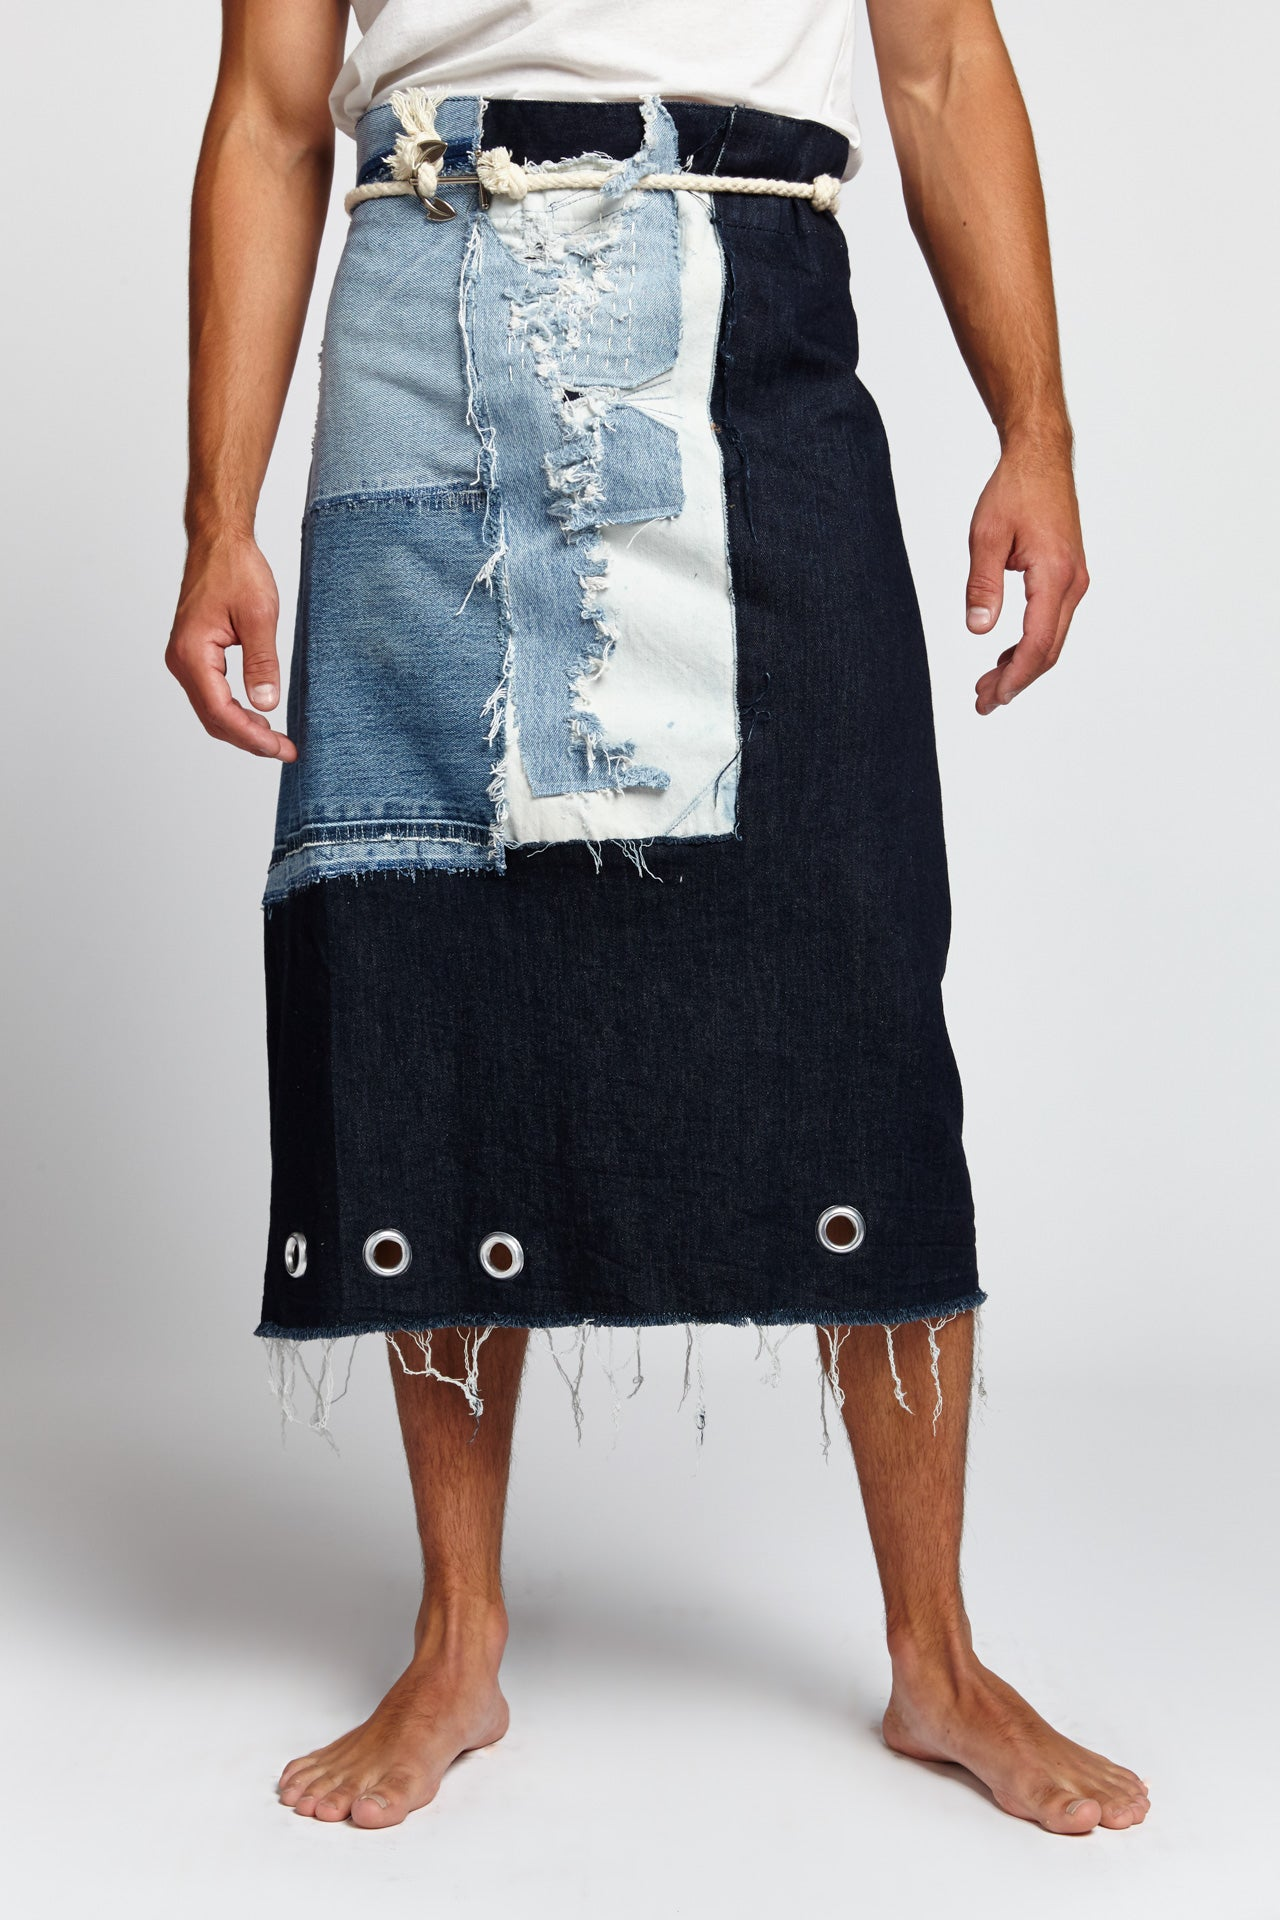 DENIM PATCHWORK COTTON BLUE 48 W MAN GOWN (Made to Order)-BOTTOMS-Mundane Official-48-DARK BLUE-Mundane Official